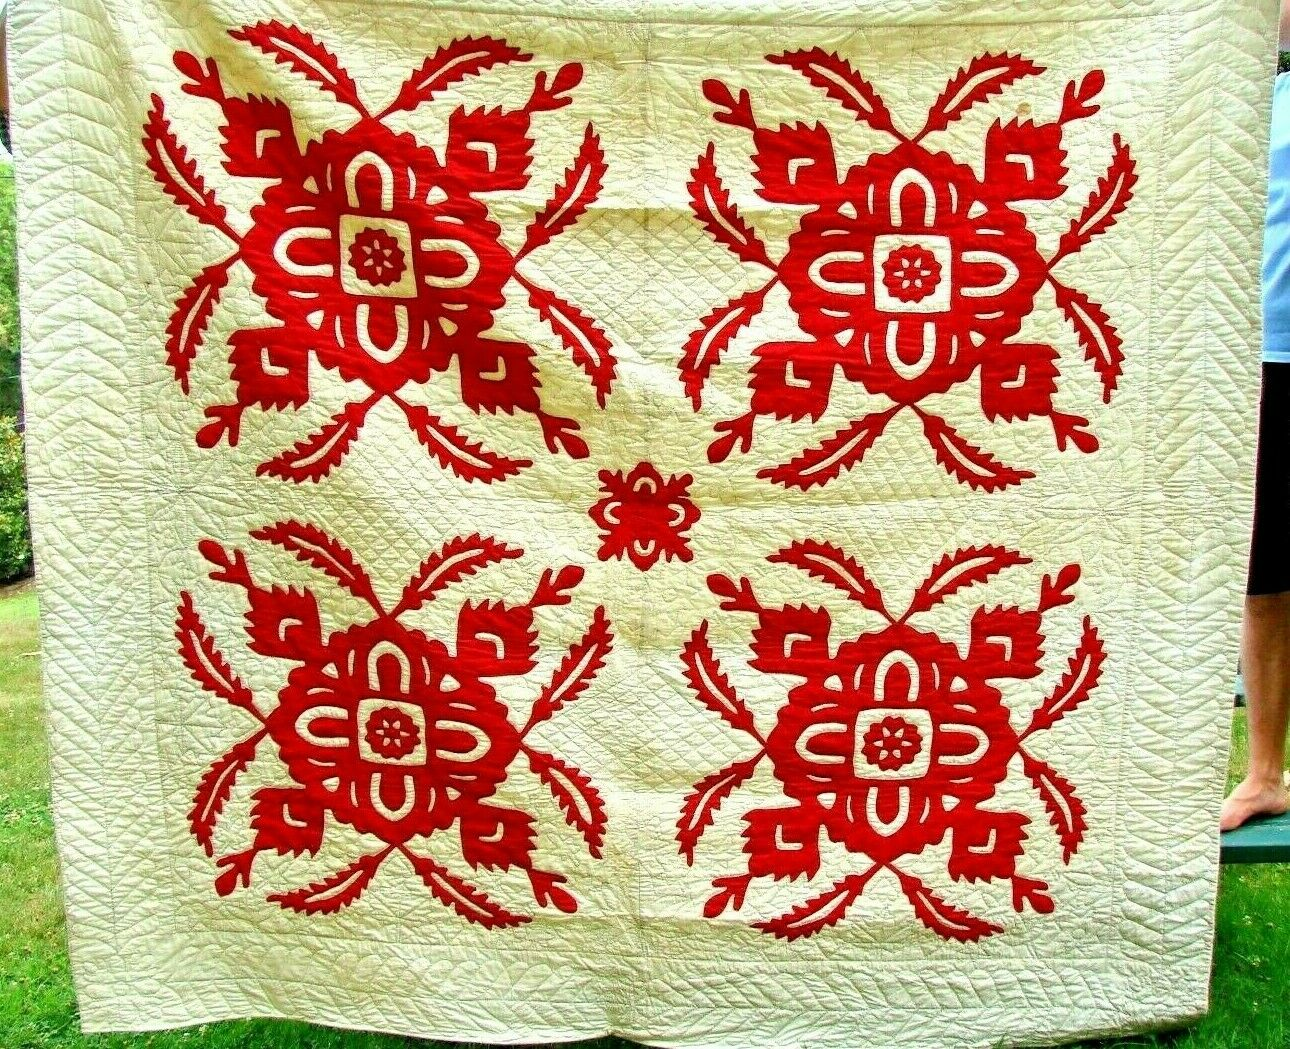 ANTIQUE ESTATE PA HANDSTITCHED APPLIQUE RED WHITE QUILT 1800 S EARLY 1900 S  - $177.50